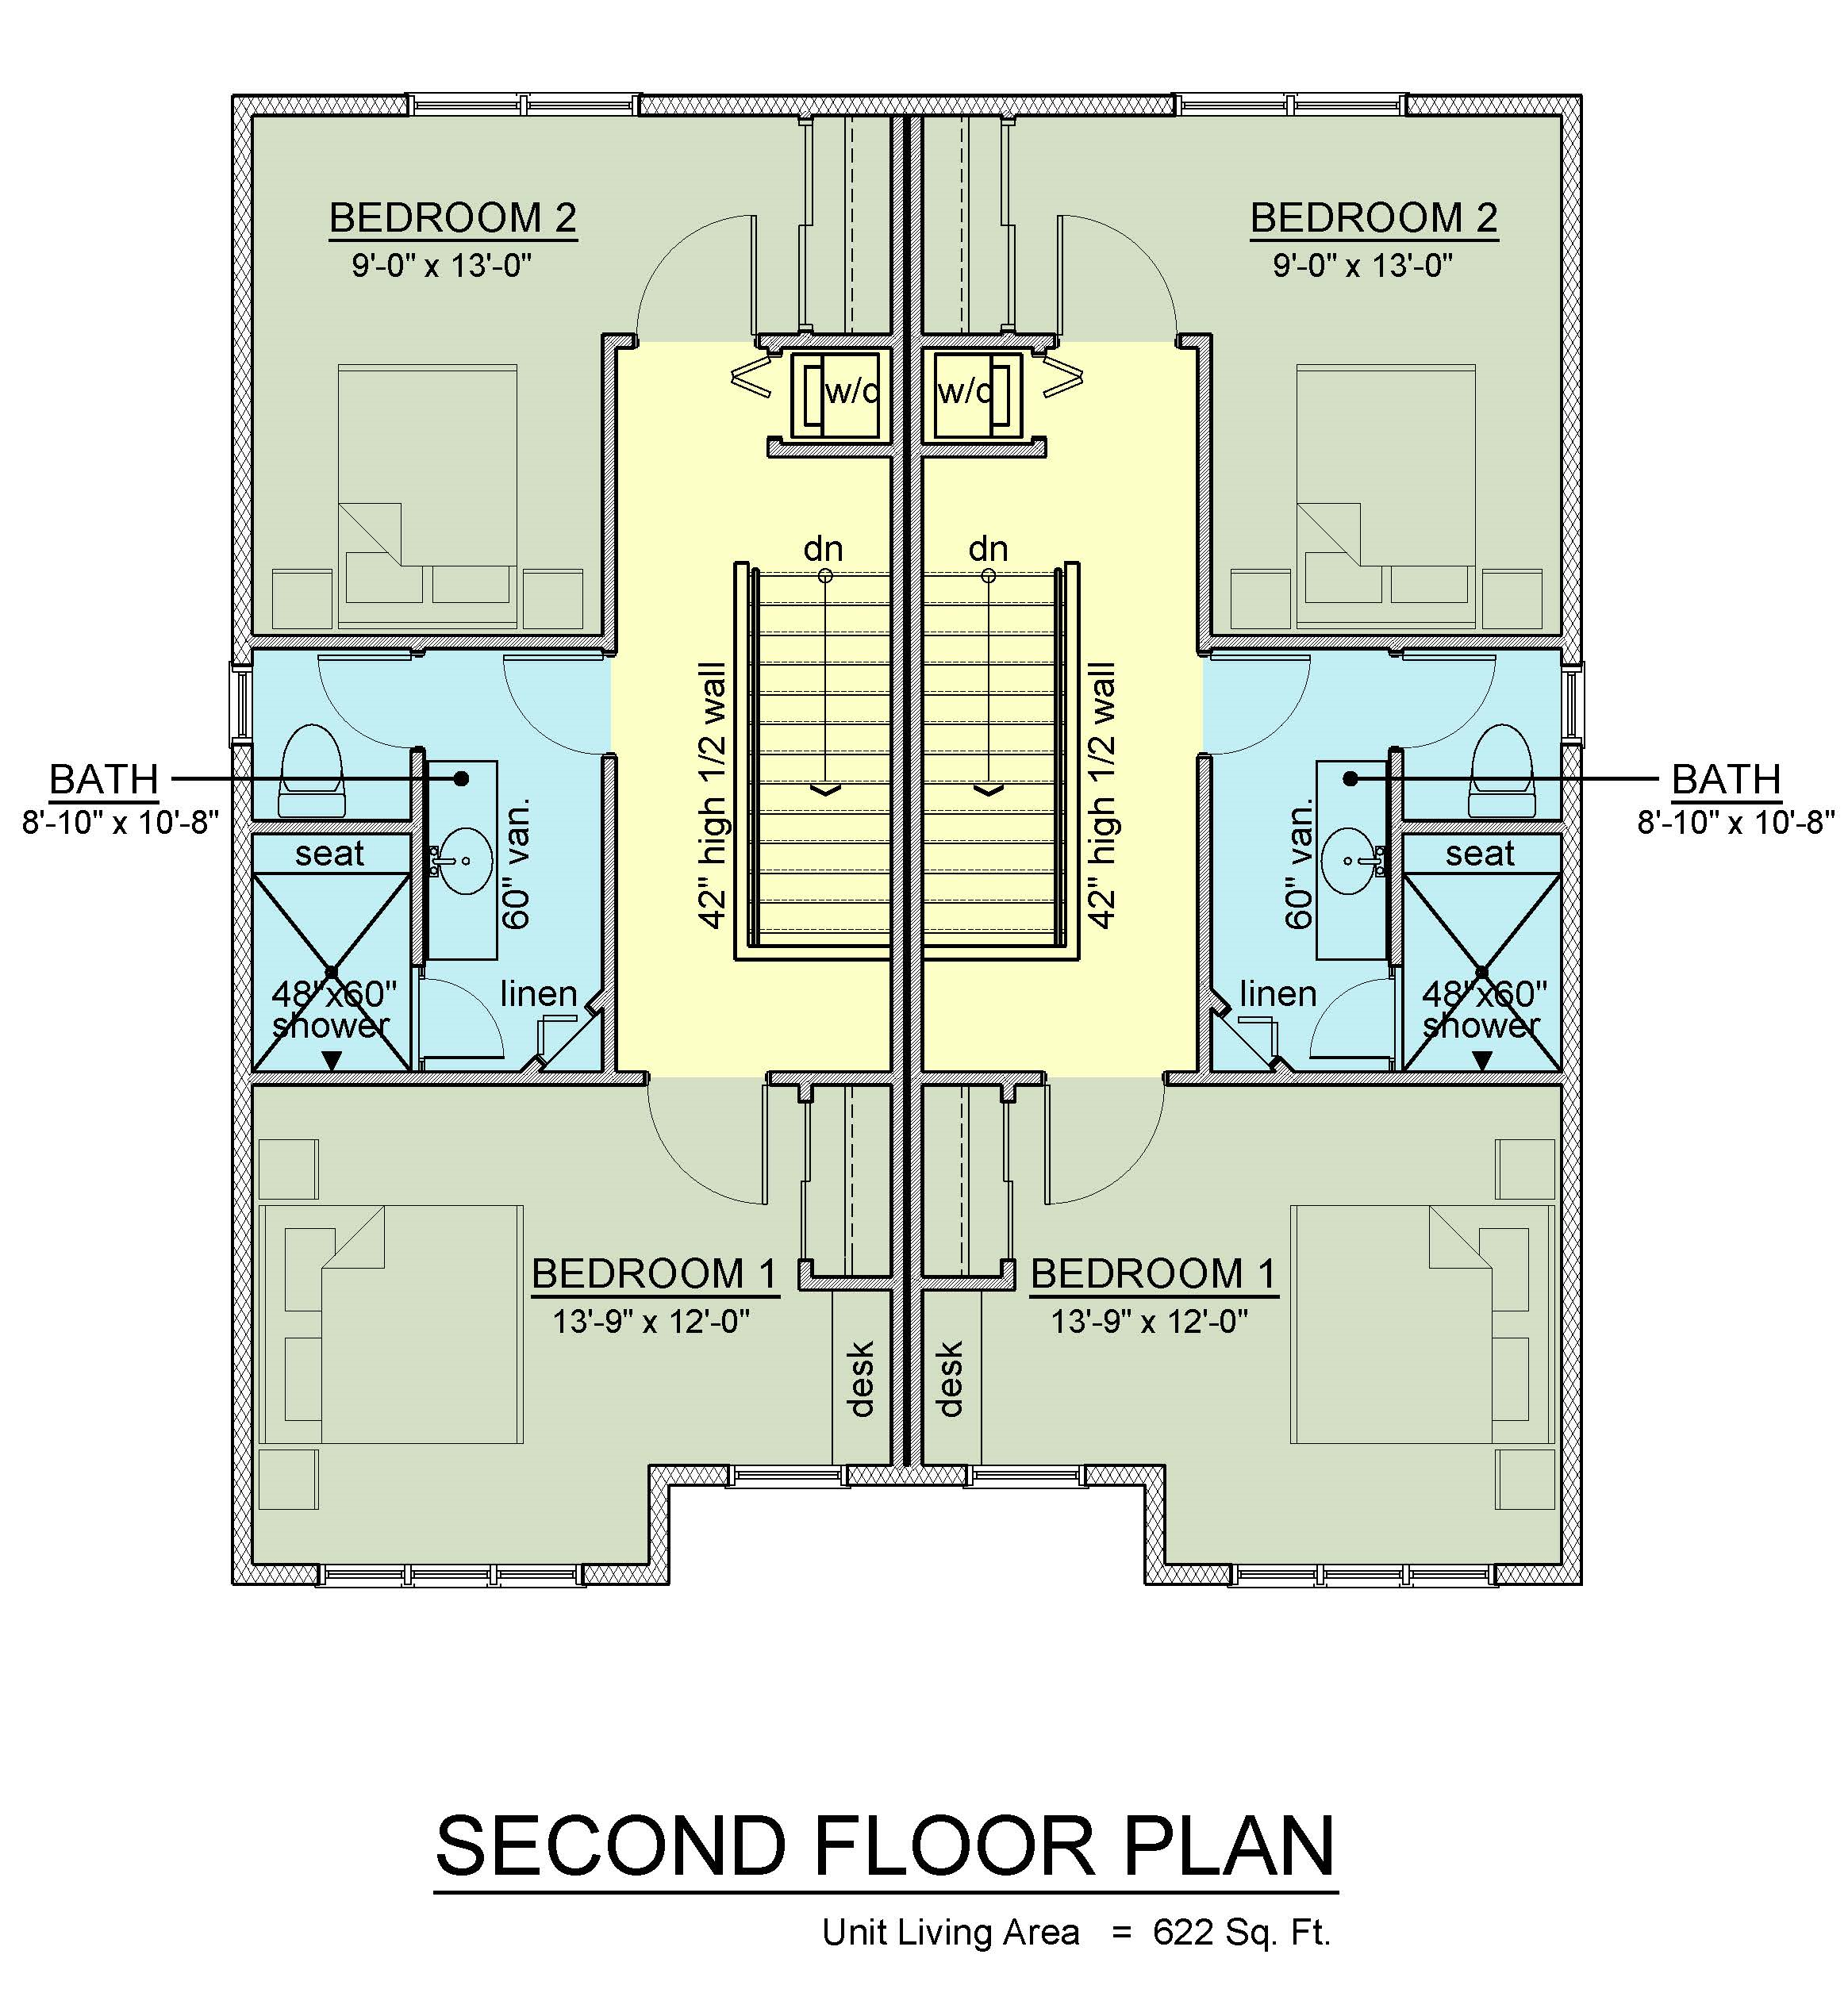 Second floor plan geneseo apartments new off campus for Upstairs floor plans